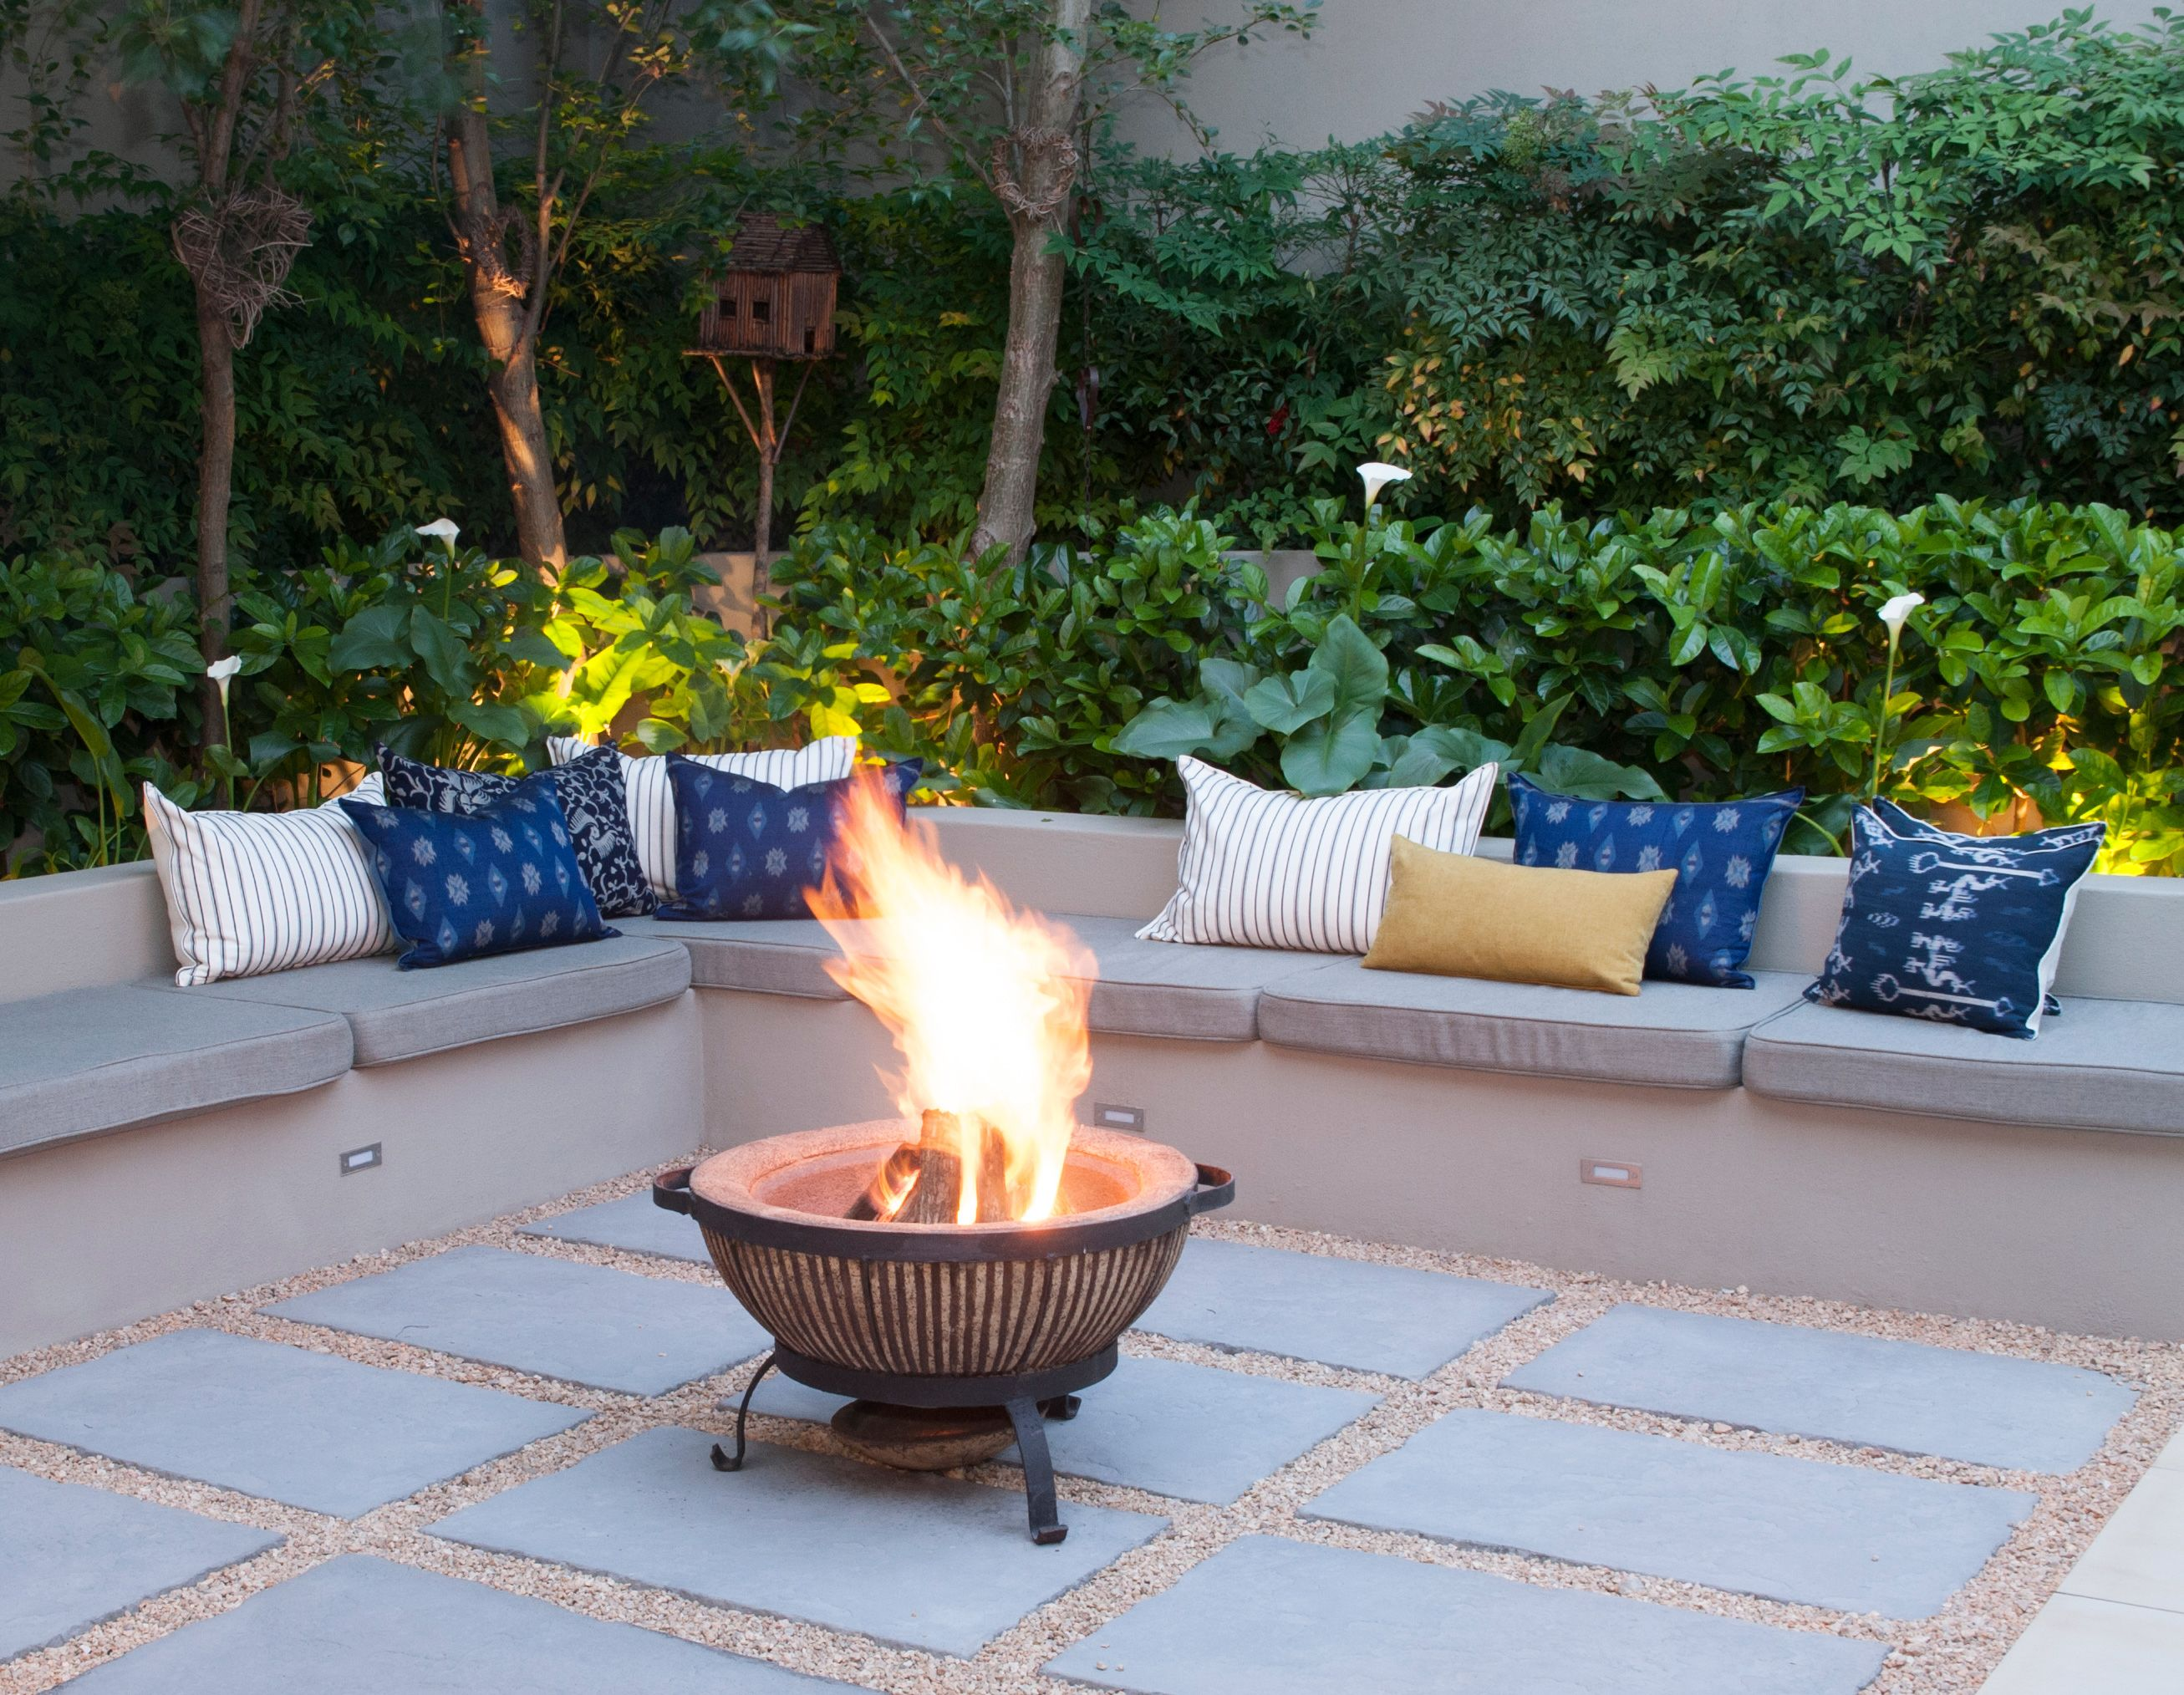 5 Inspiring firepits for outdoor entertaining | Outdoor ... on Modern Boma Ideas id=68365